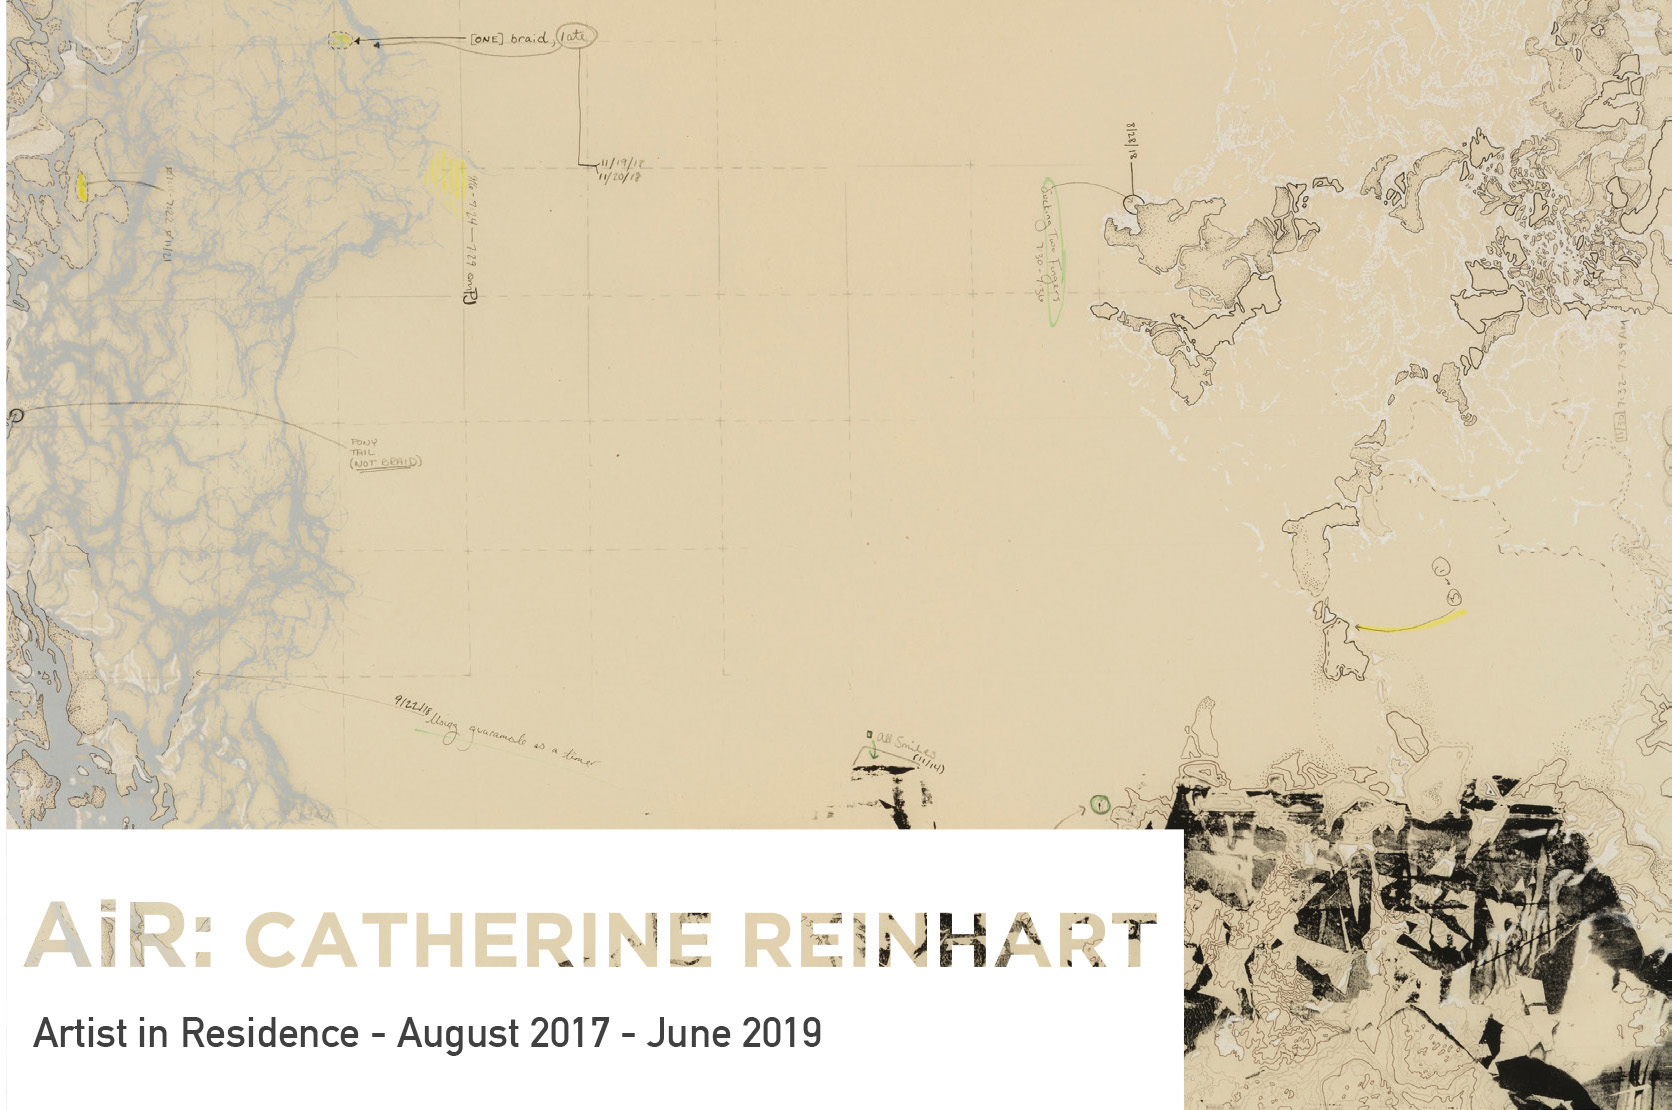 AiR: Catherine Reinhart exhibition postcard